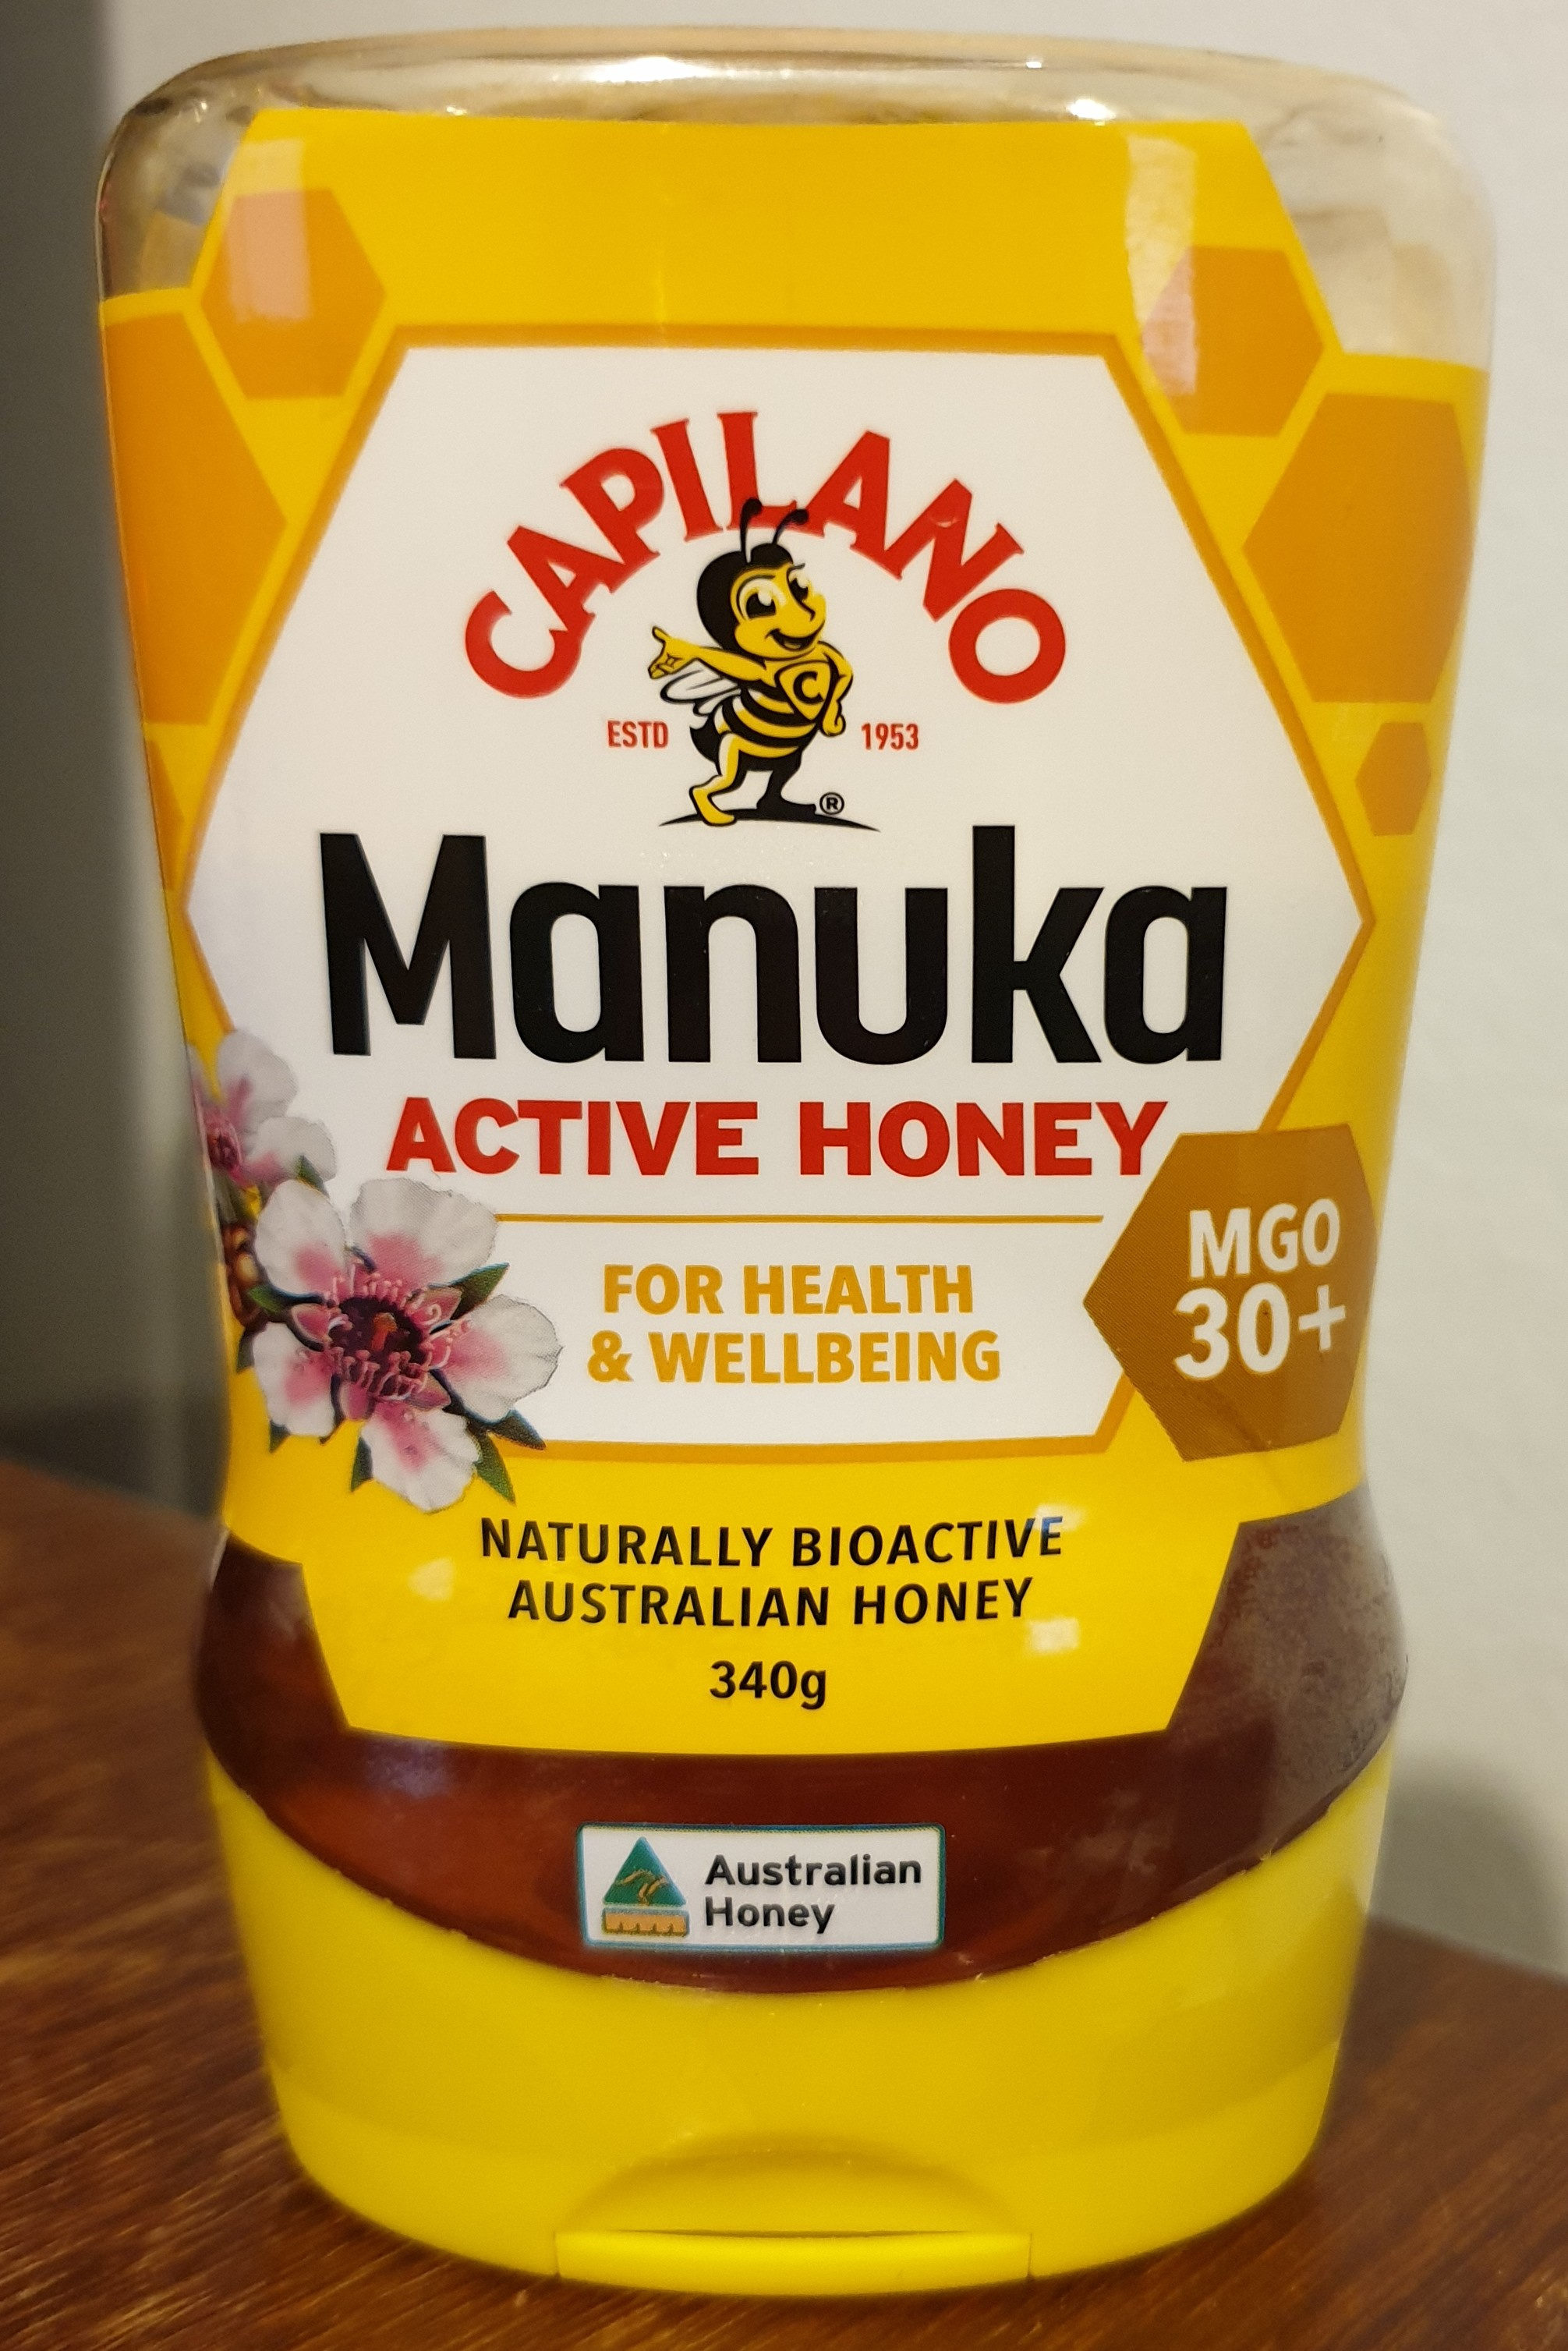 Manuka active honey - Product - en